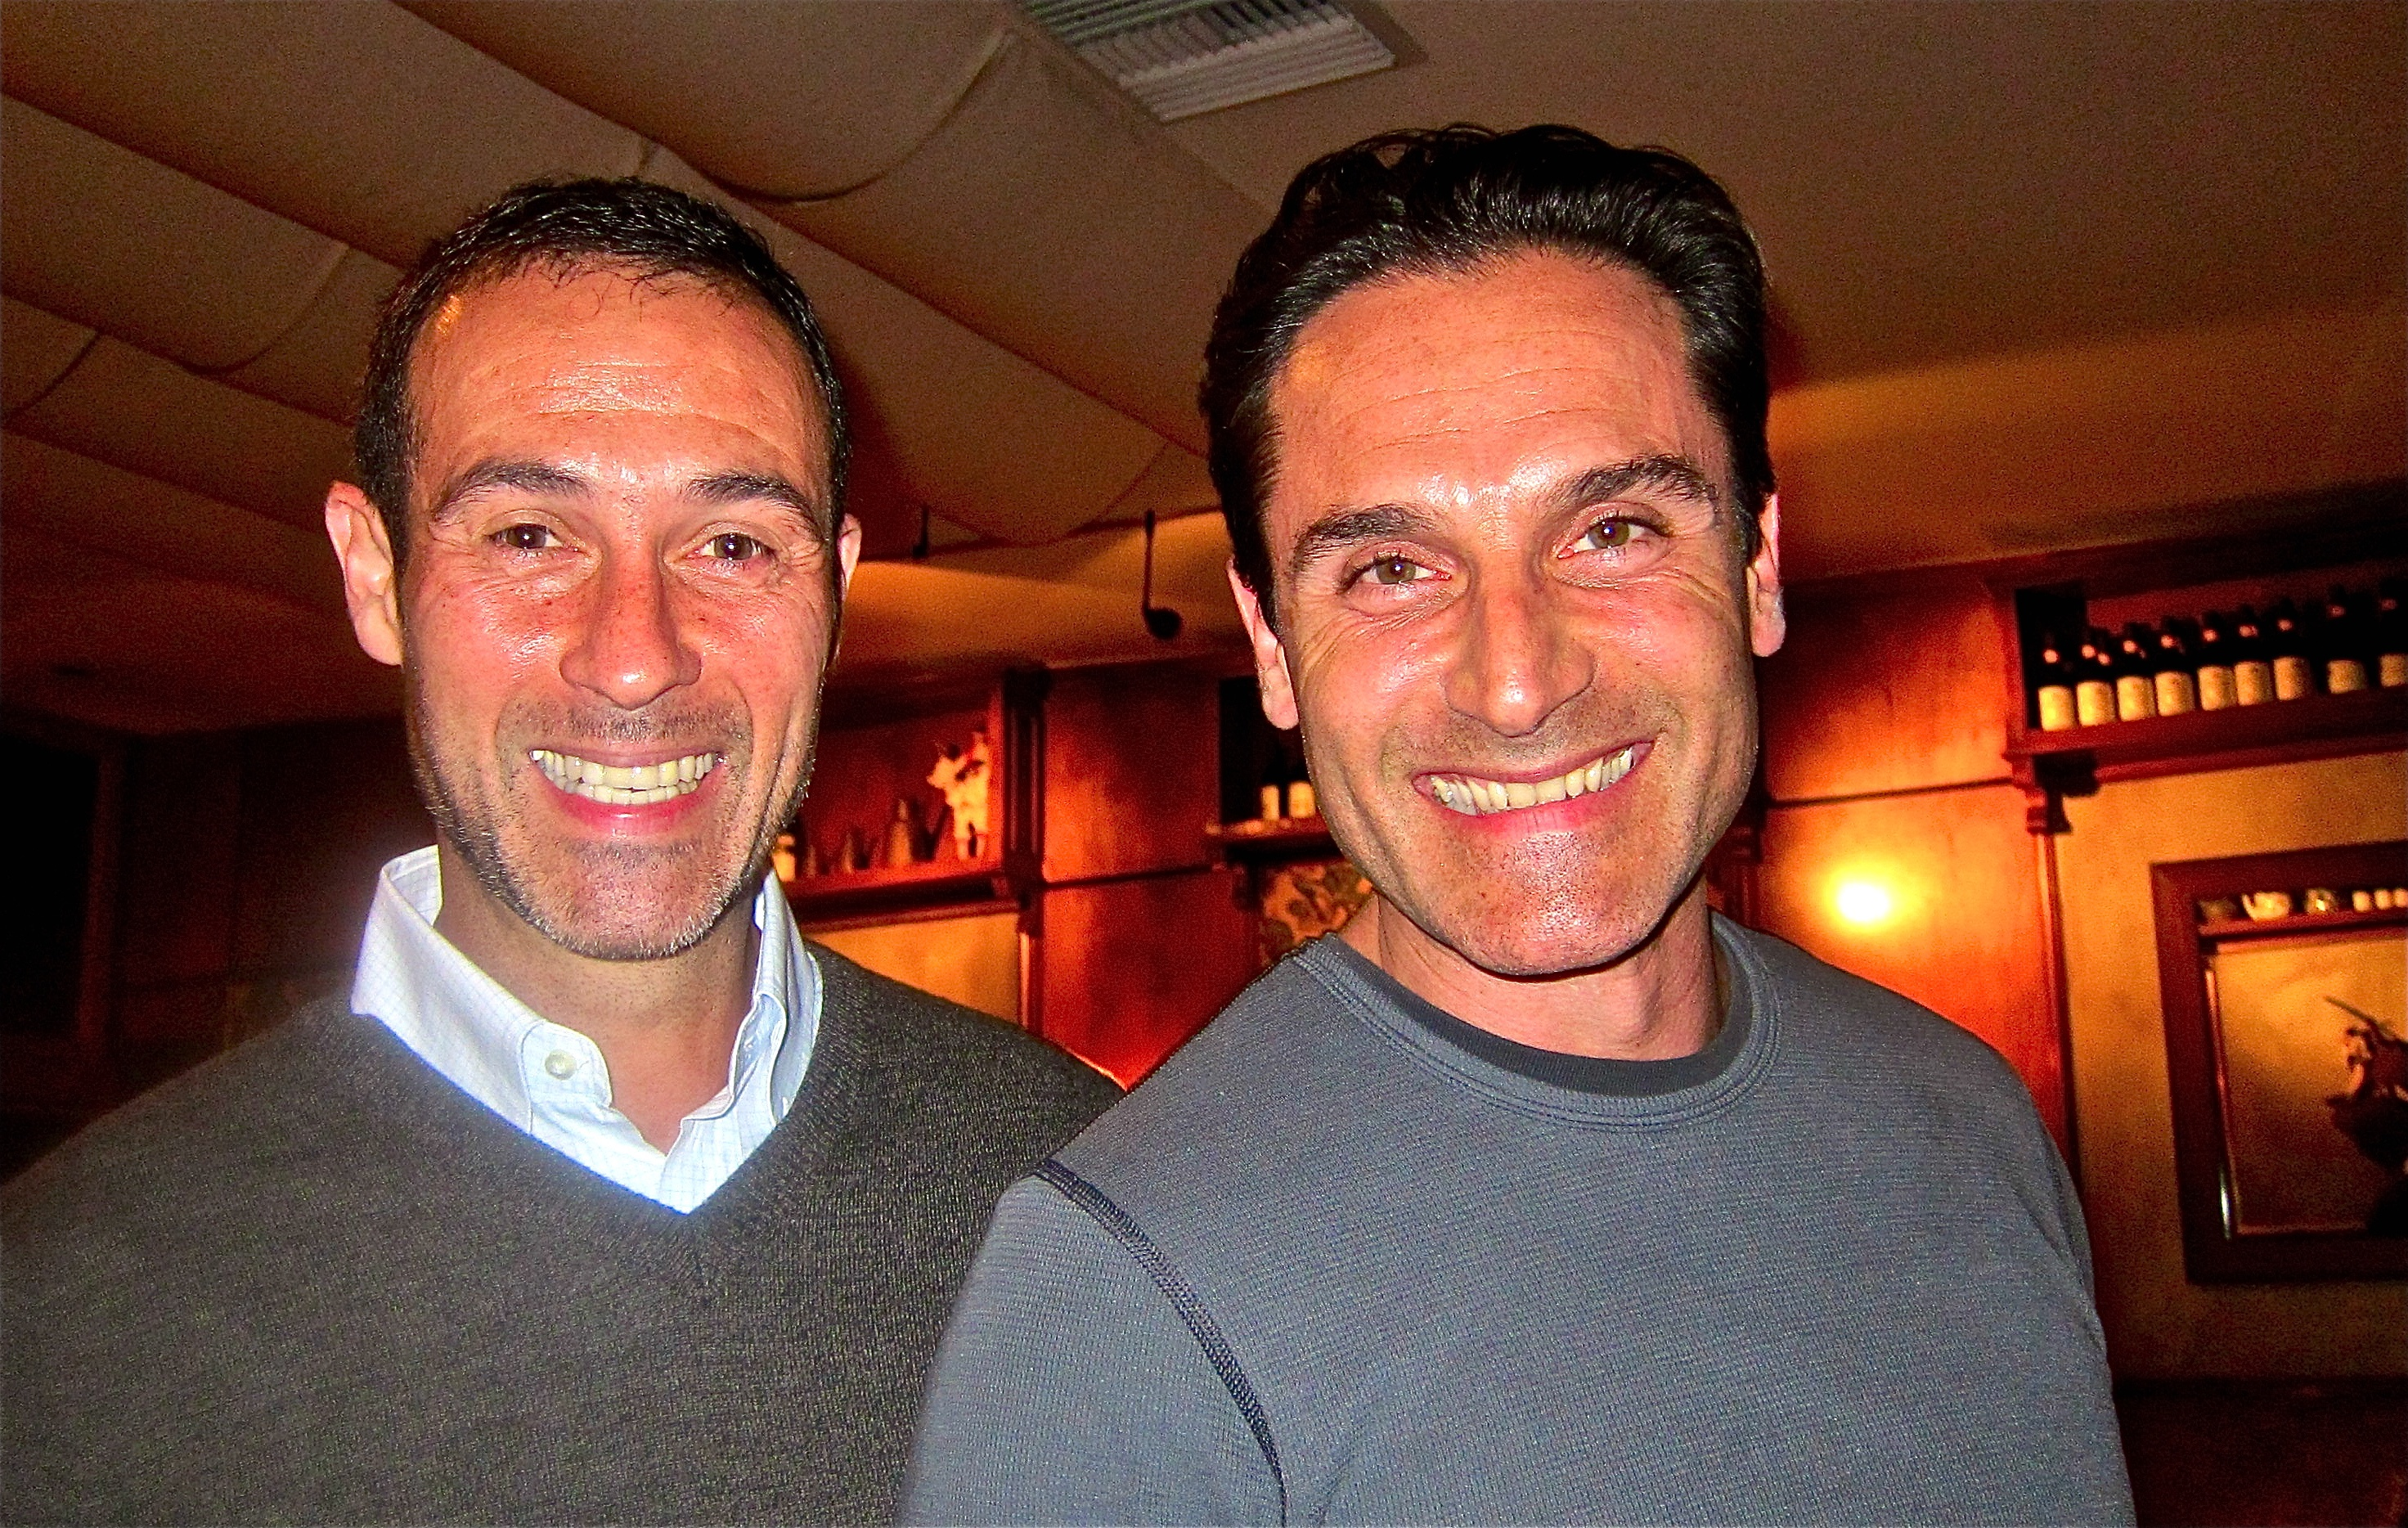 Co-owners Alberto Ferrari and Florstano Caraccioli